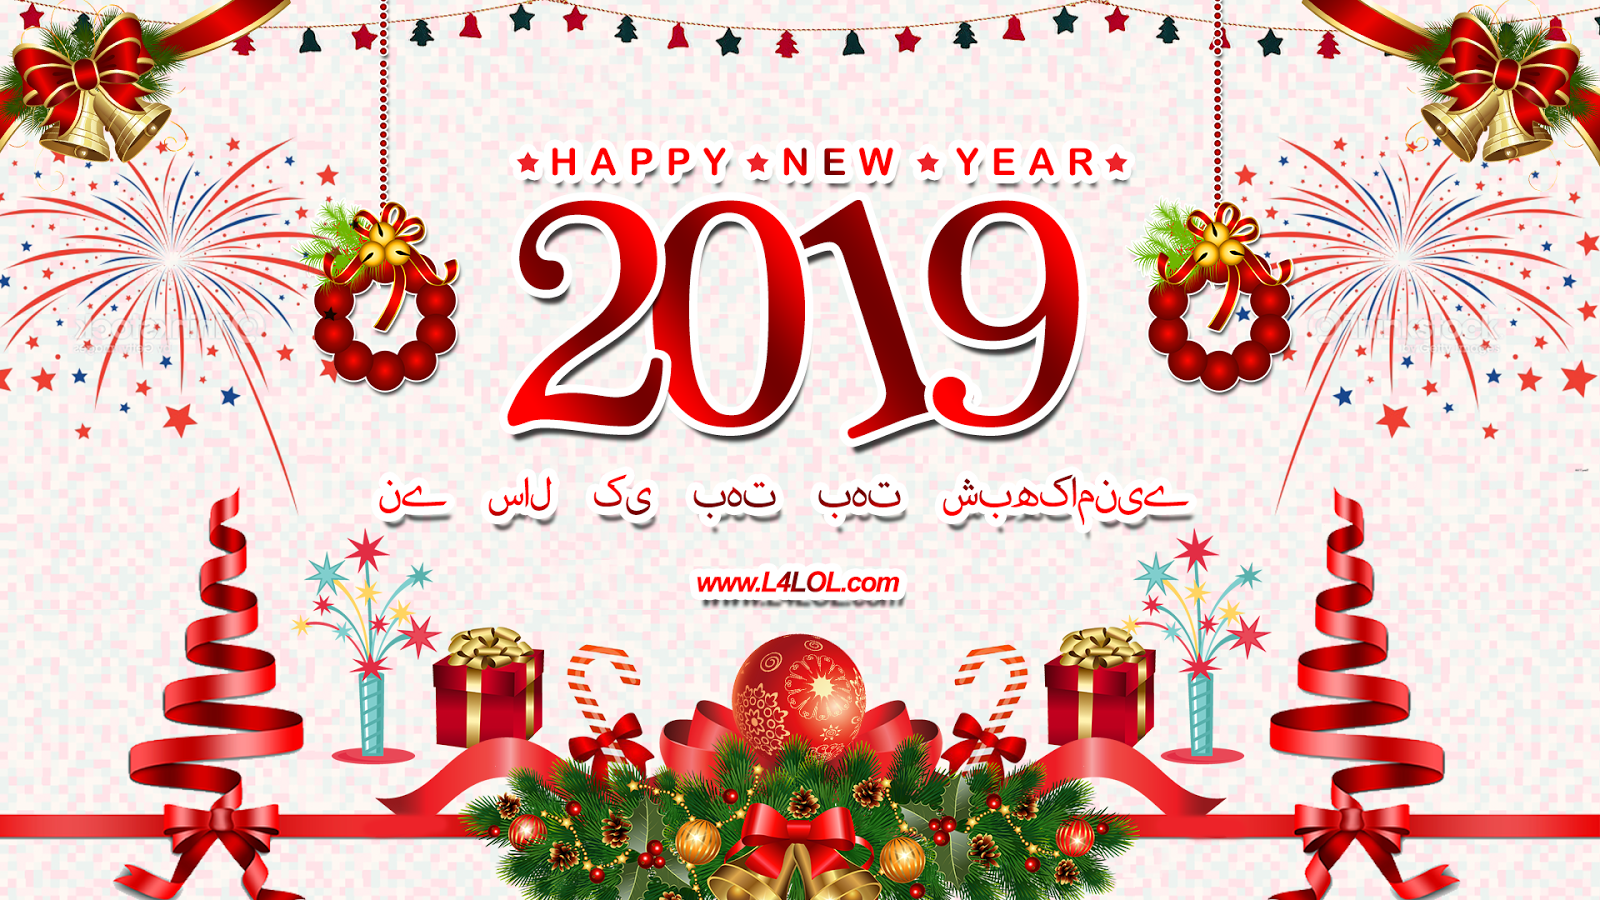 Happy New Year Images 2019 Quotes Status Wishes Wallpapers Messages